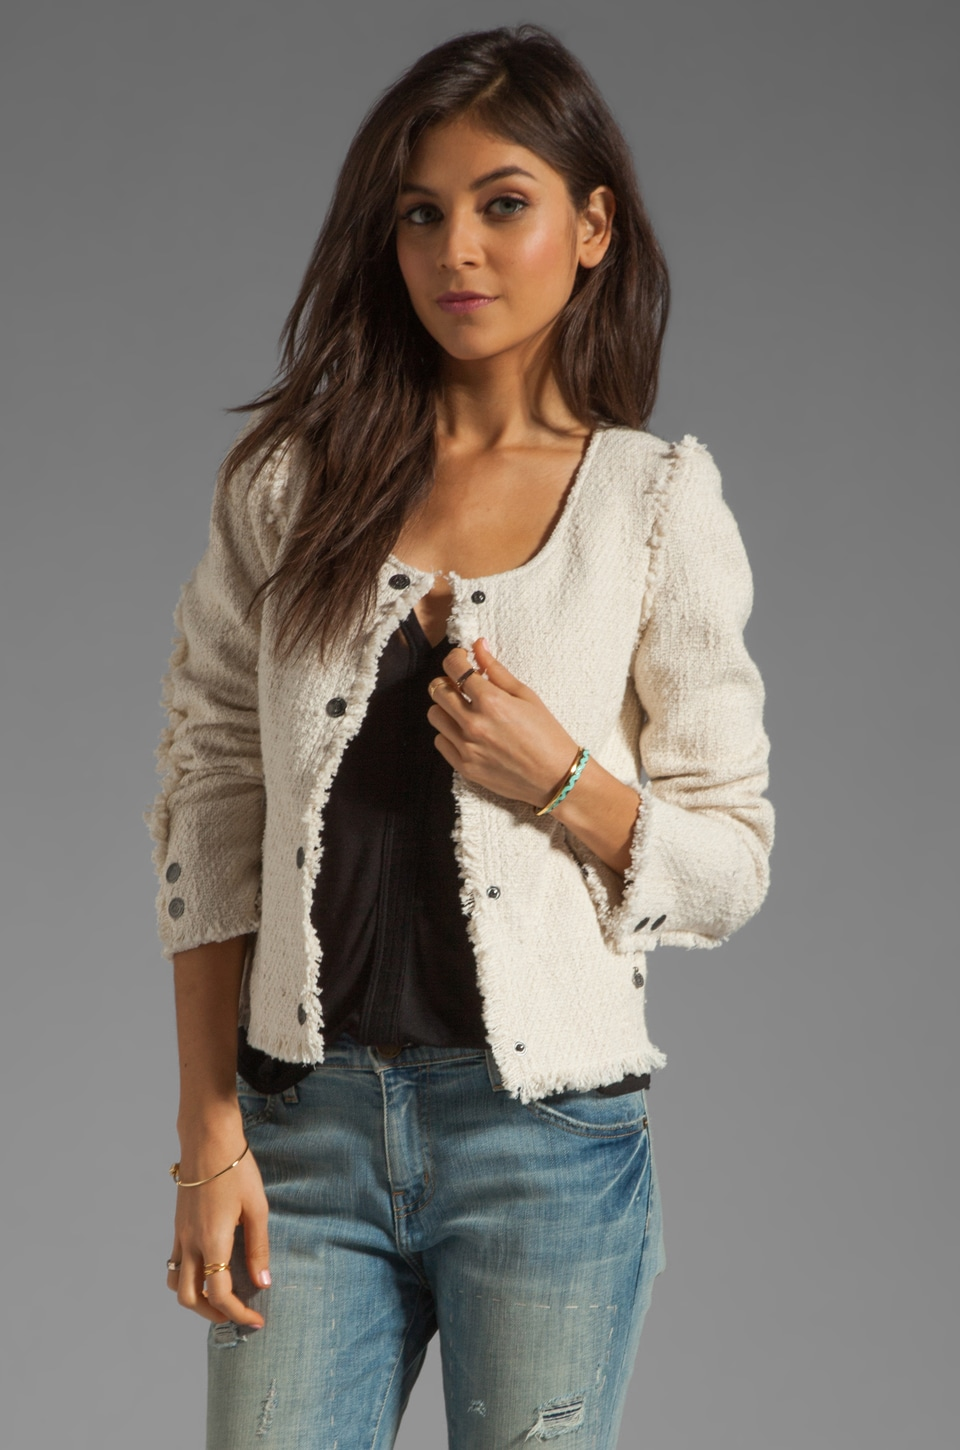 Maison Scotch Tweed Blazer in Cream